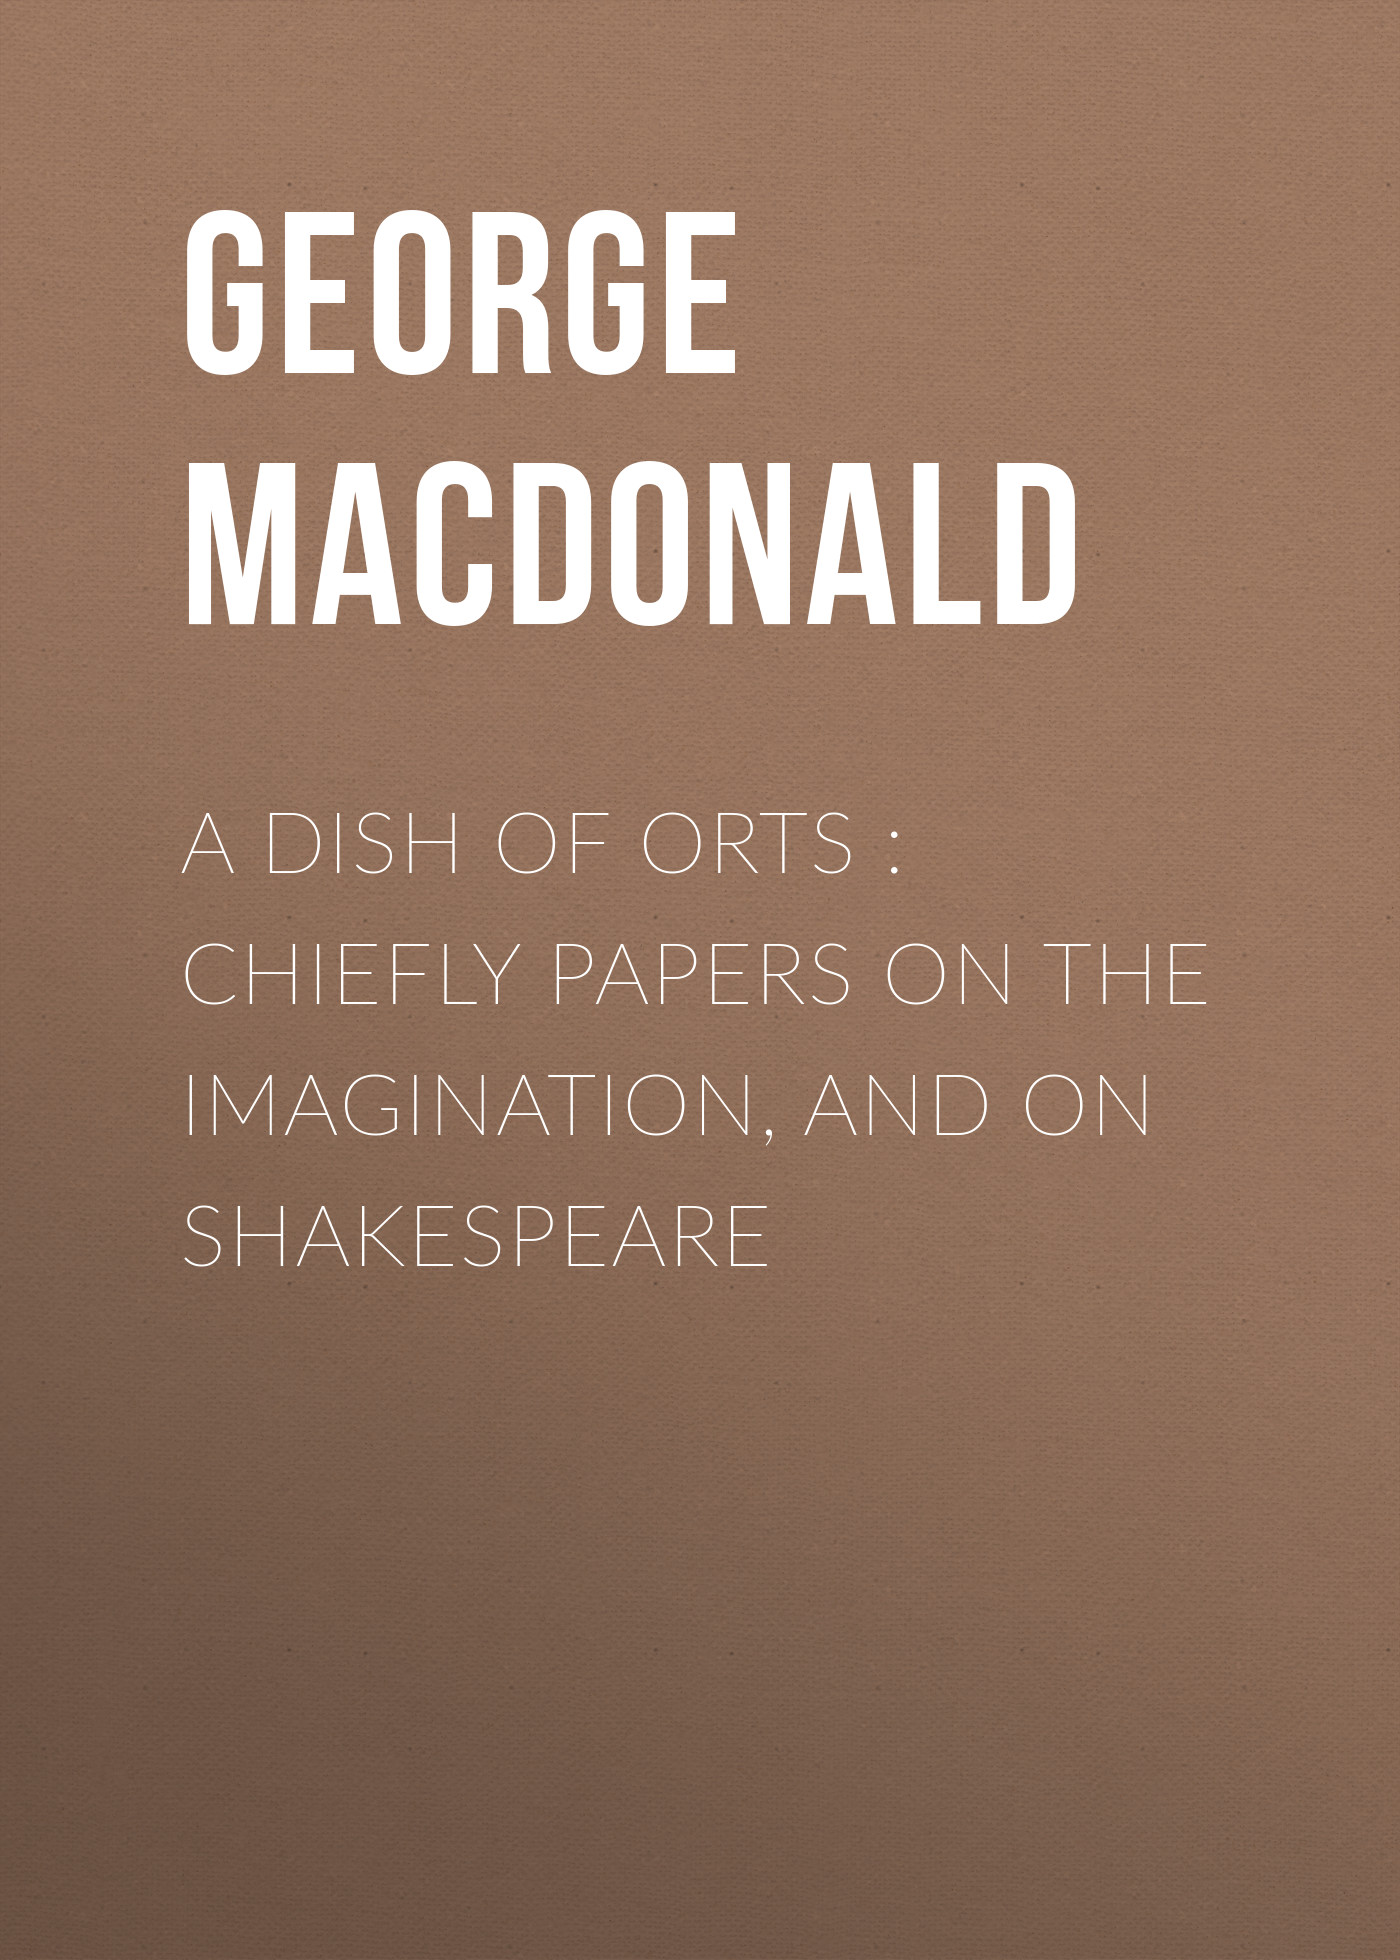 George MacDonald A Dish of Orts : Chiefly Papers on the Imagination, and on Shakespeare george macdonald a double story